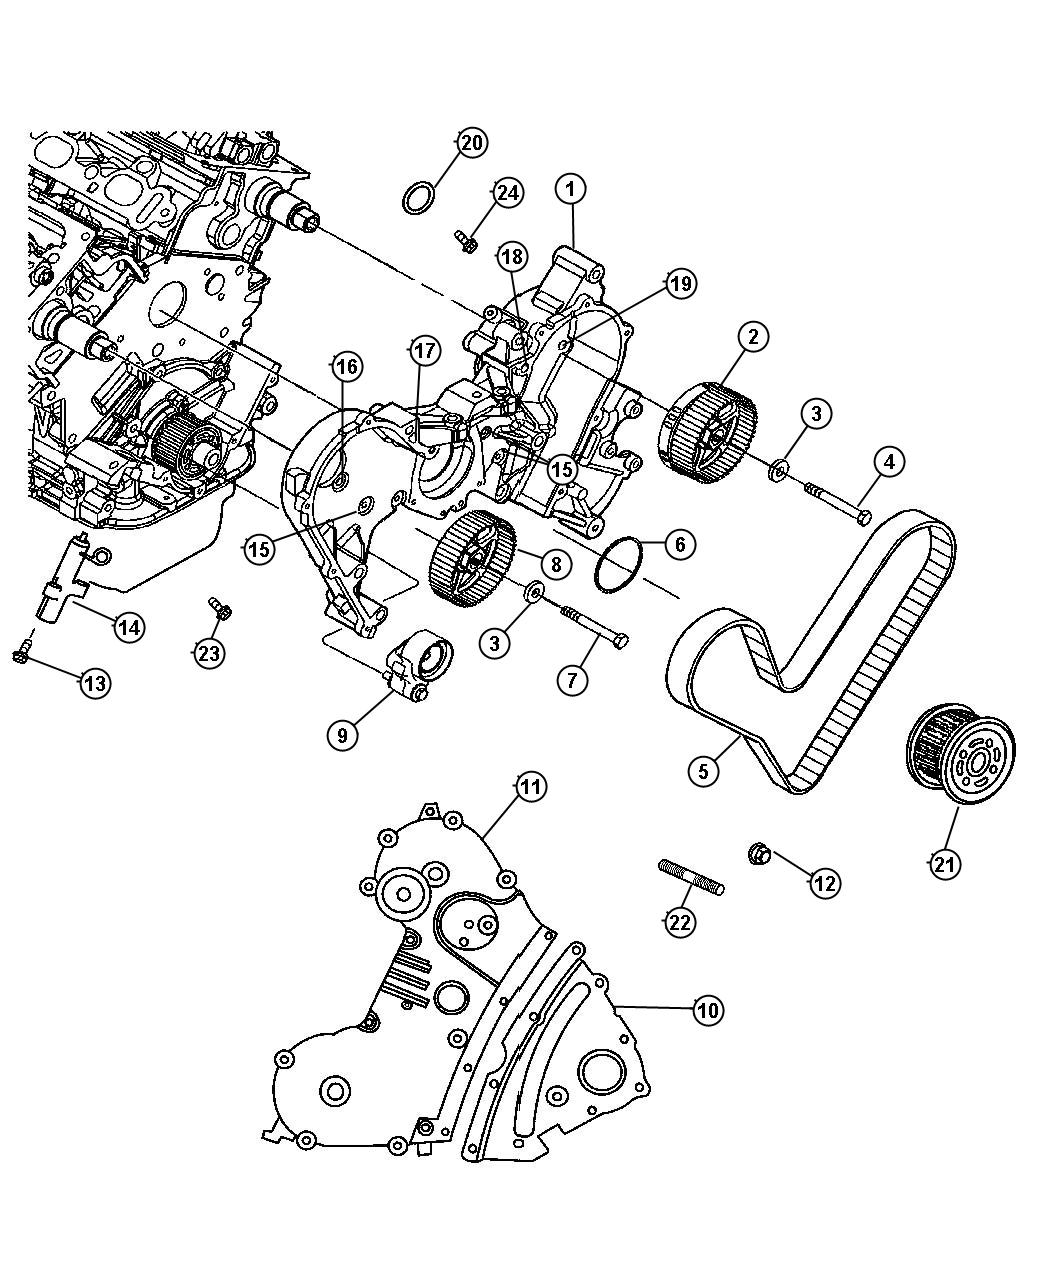 Chrysler 300 Blower Wiring Diagram